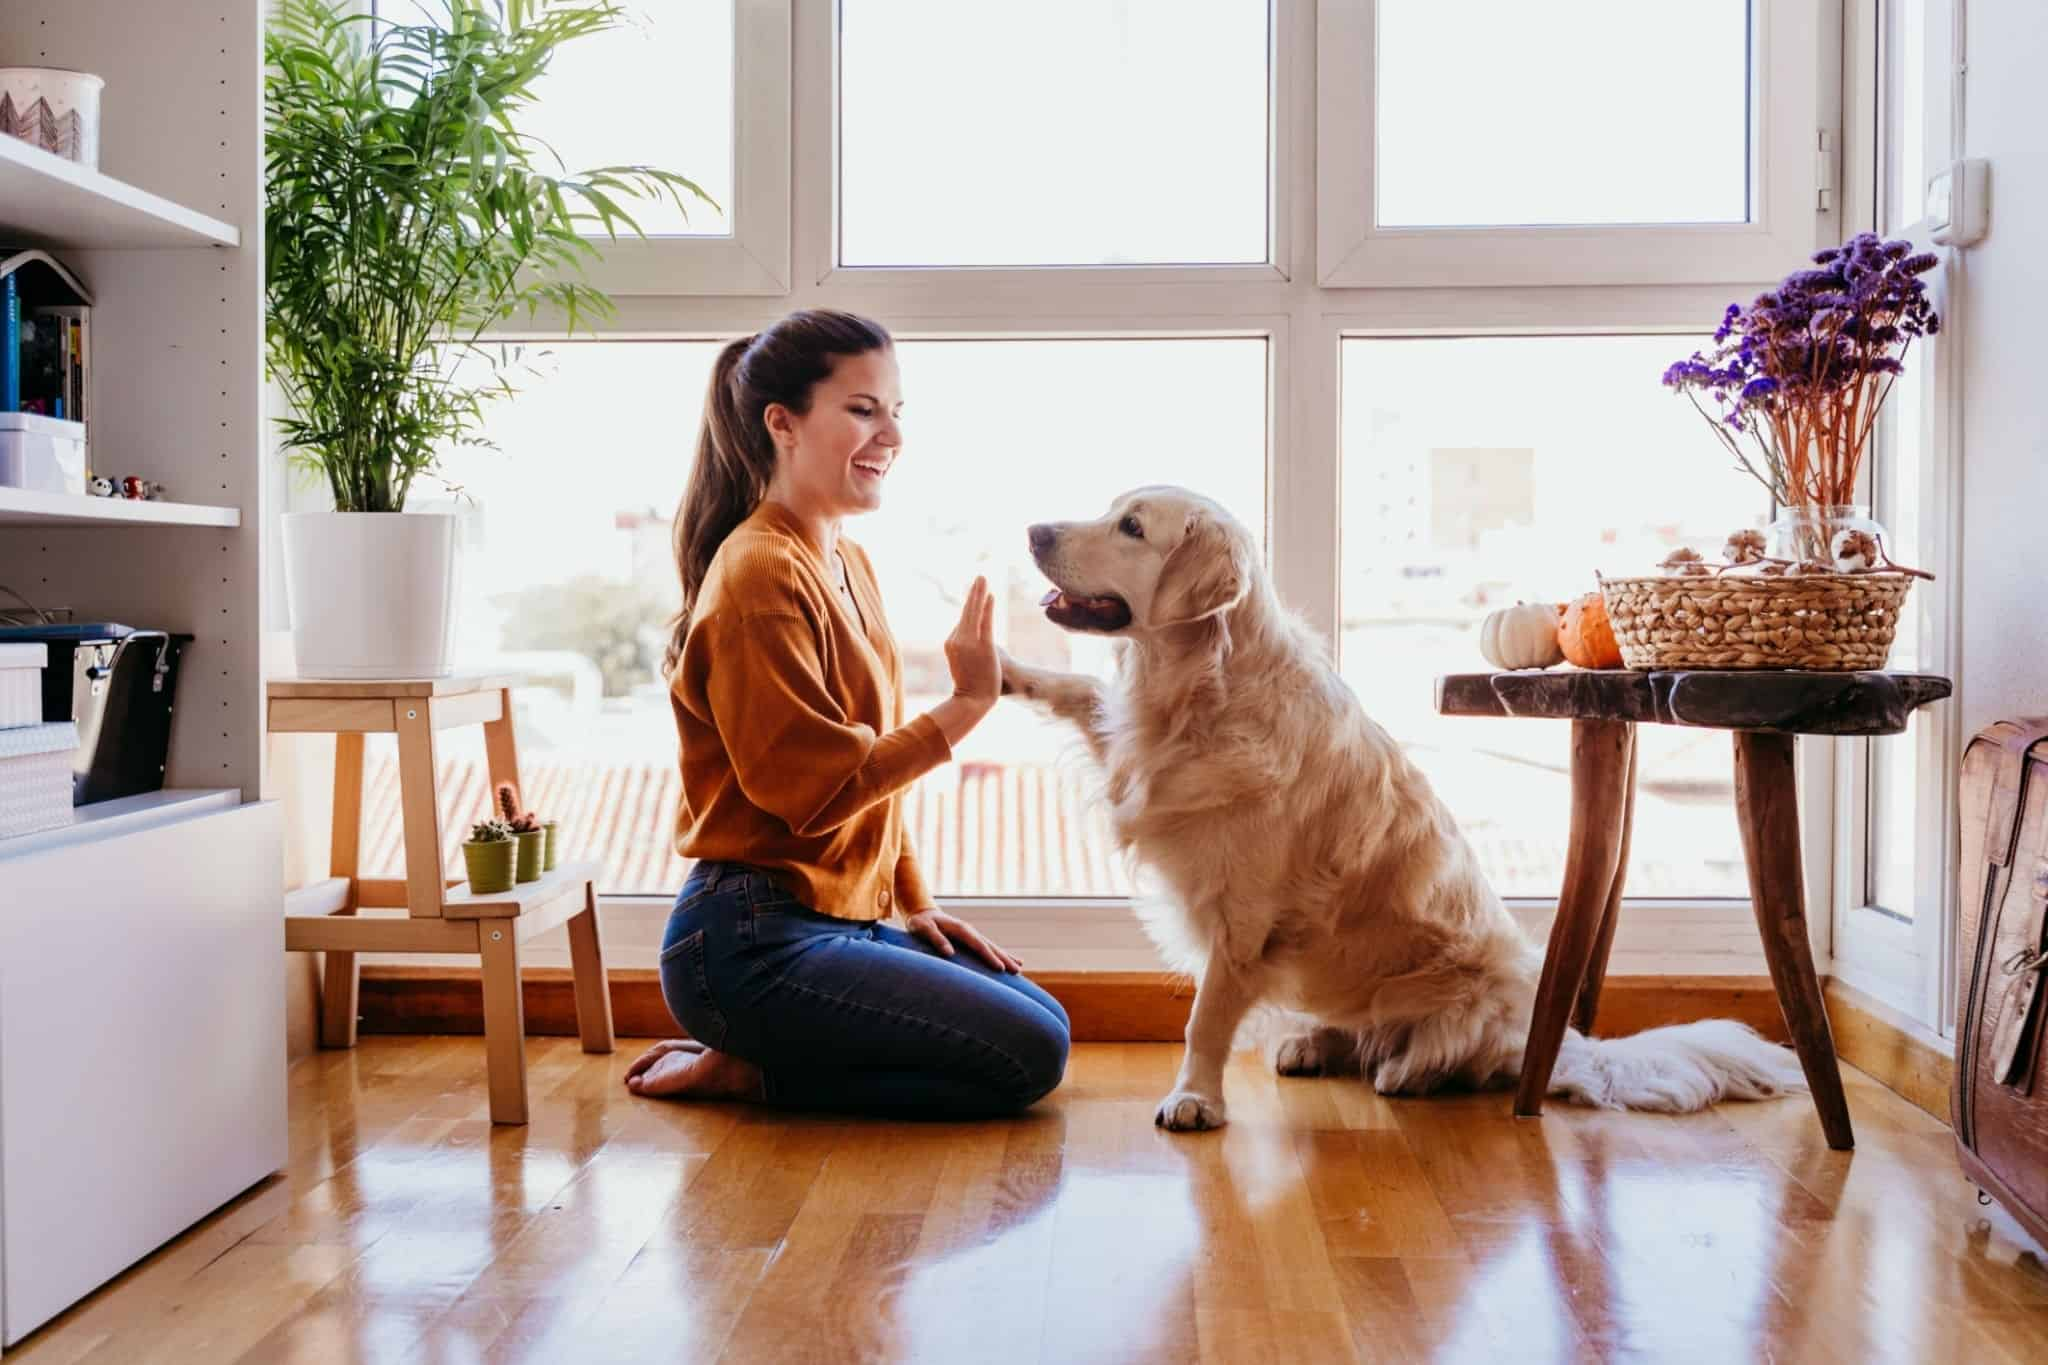 The 4 Best Dog Breeds For Single Women Living Alone